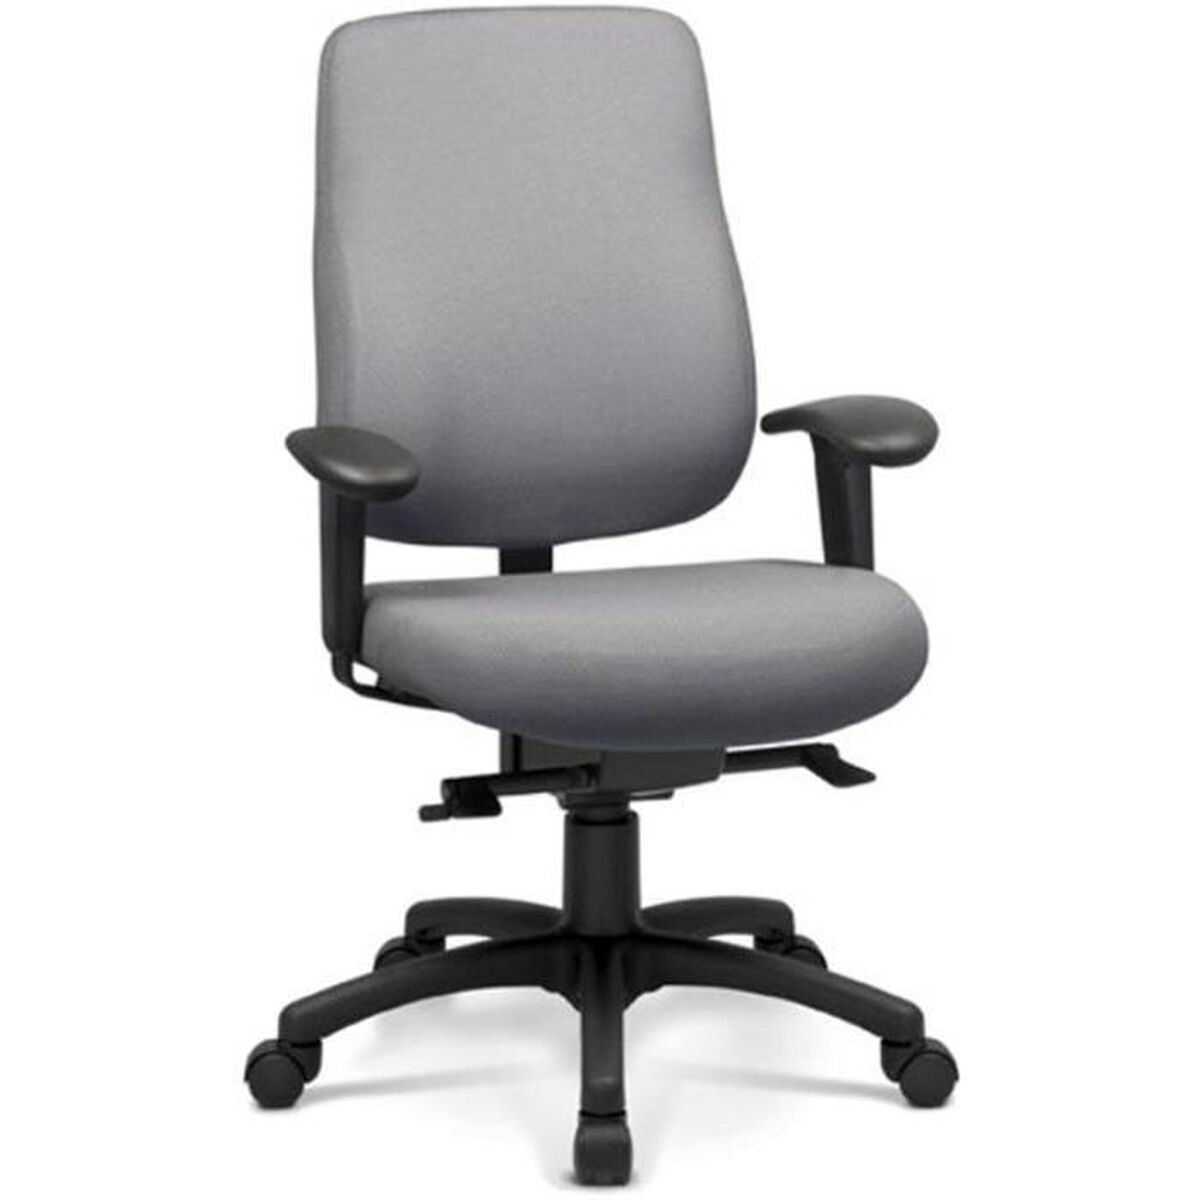 Art Design International : Art design international deco task chair with high